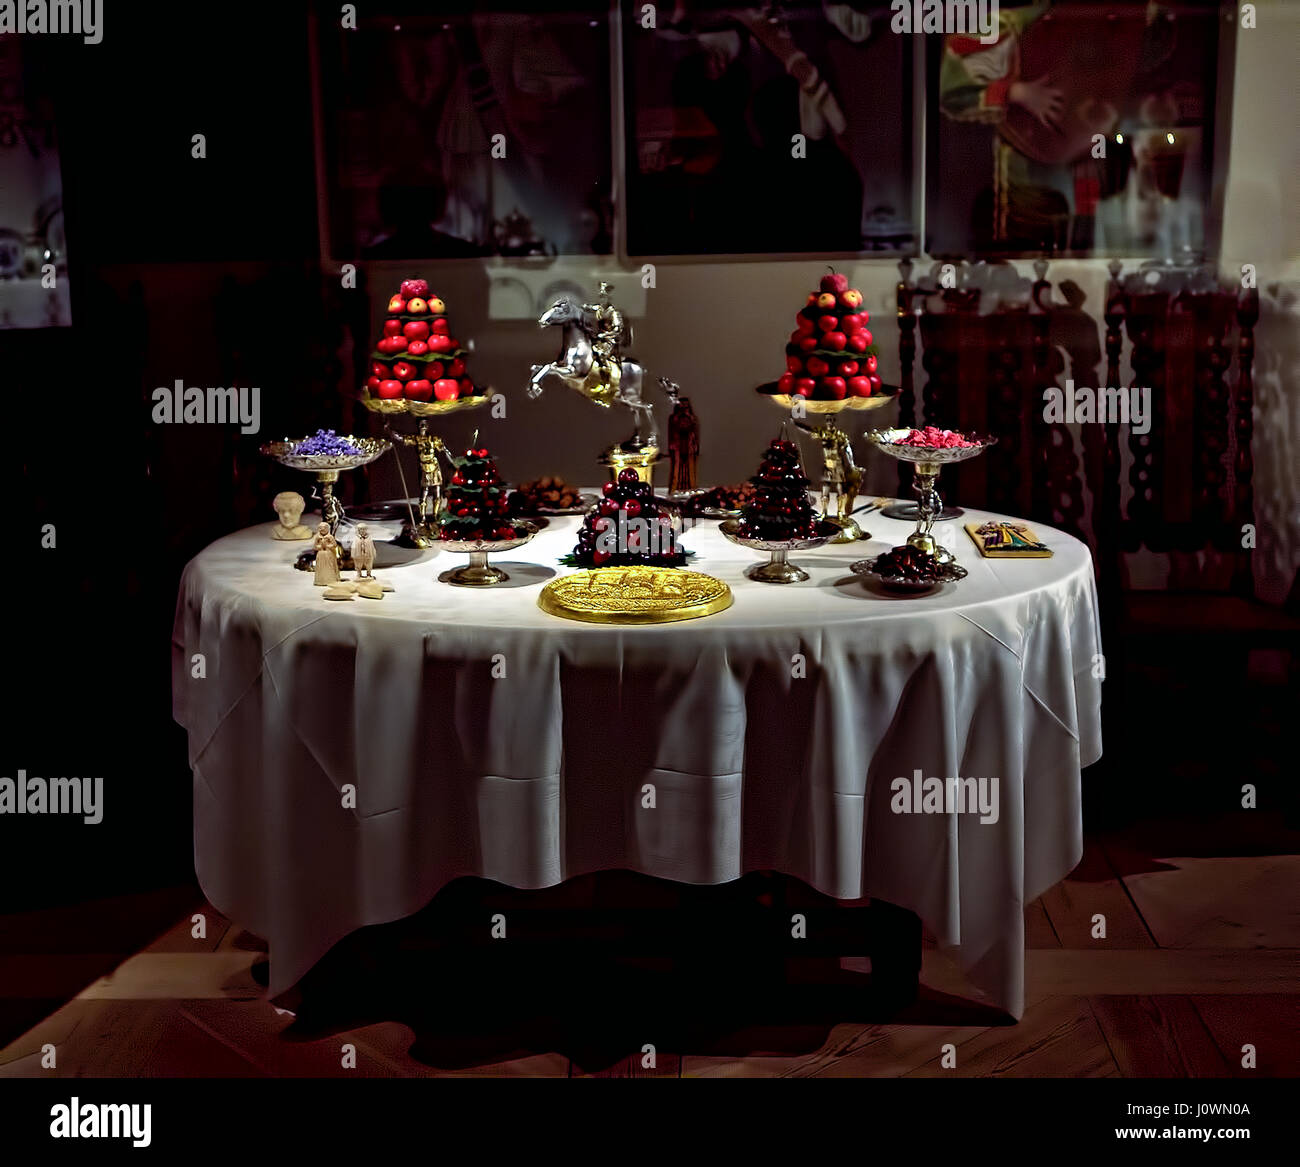 Dessert table setting 17th Century. Exhibition of table settings from the 16th century to circa 1950, Nordiska Museet, - Stock Image